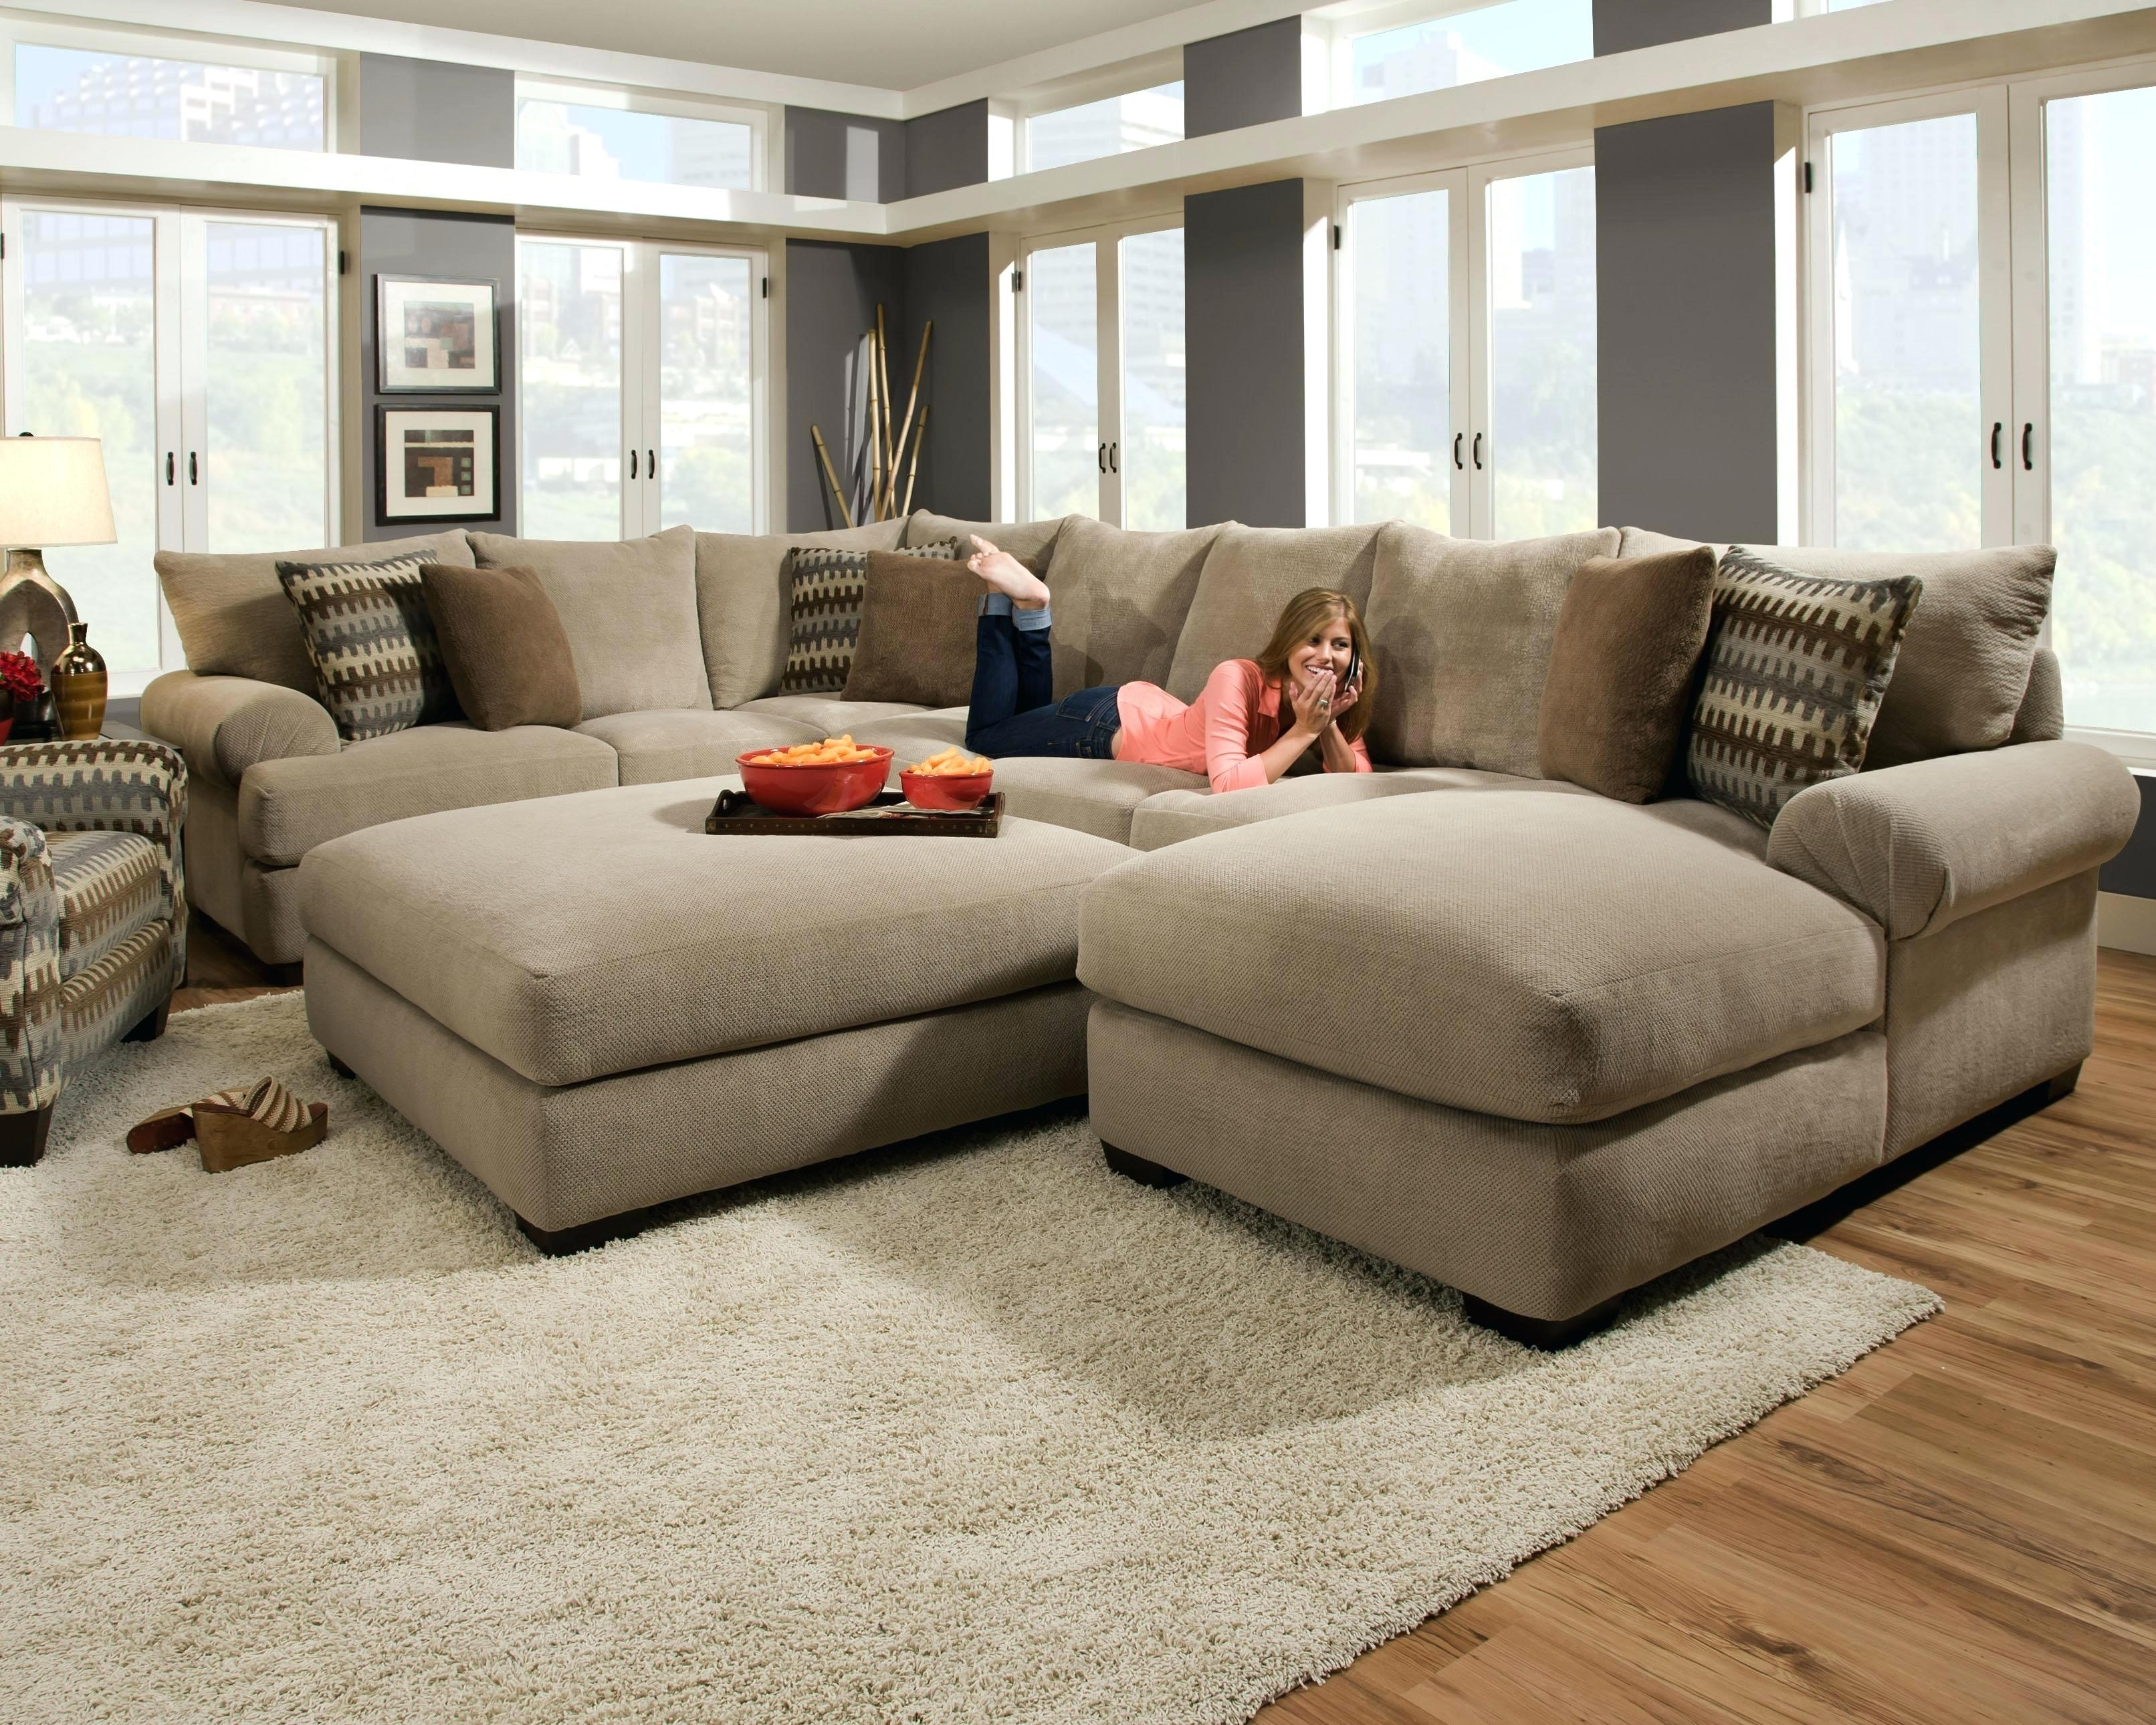 Deep Cushion Couch Sectional Sofas Leather Sofa With Deep Cushion Sofas (View 9 of 10)